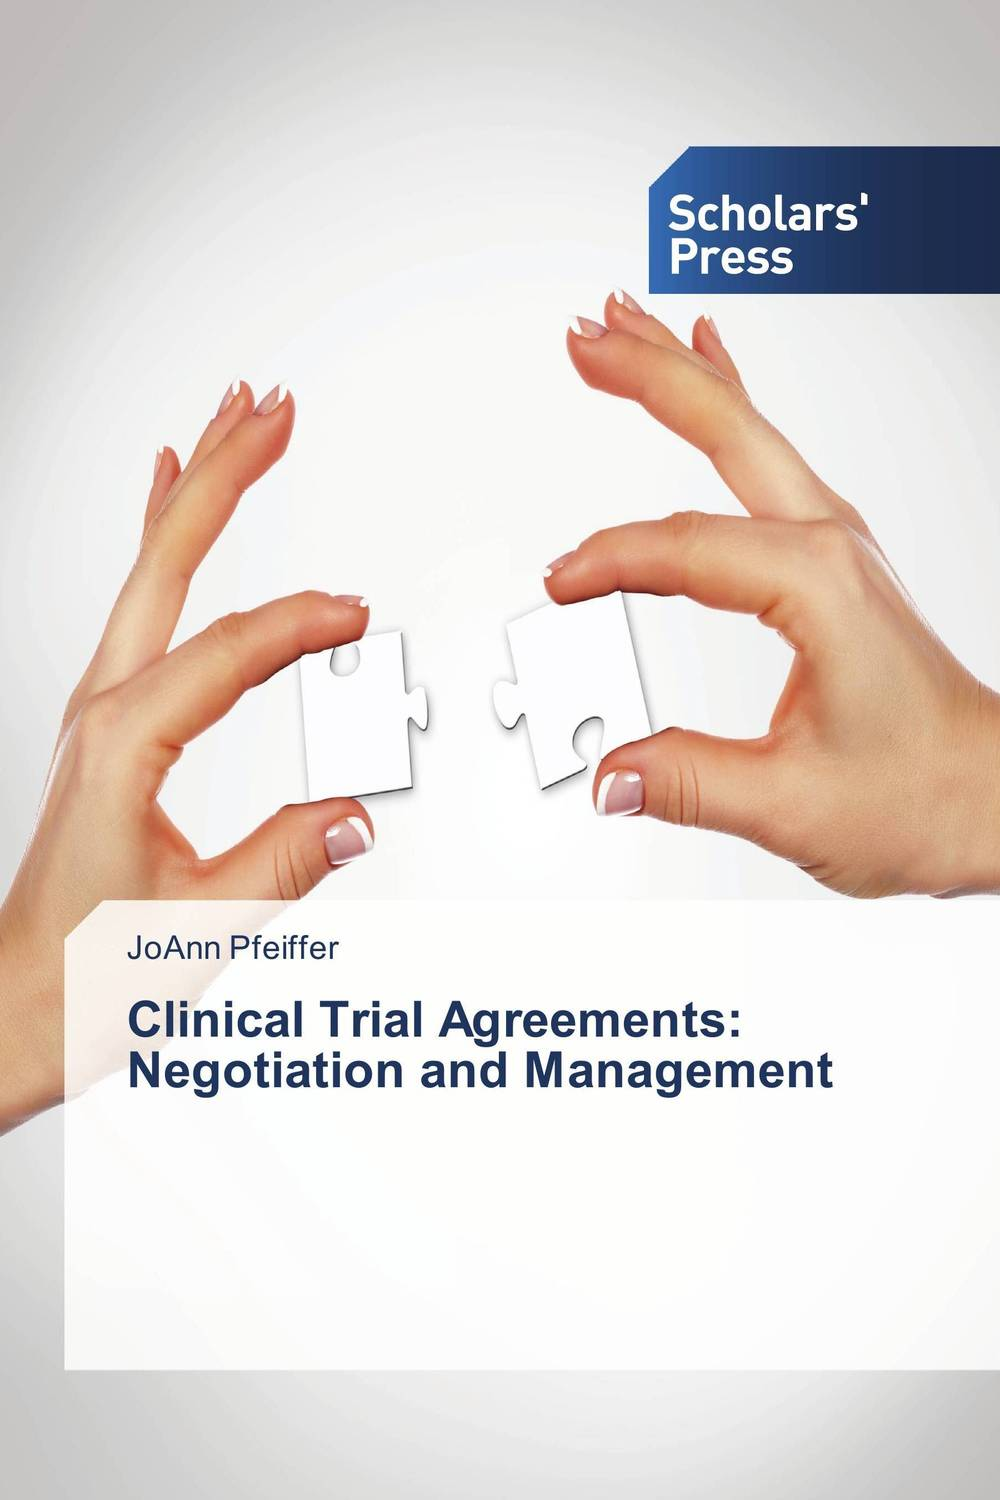 Clinical Trial Agreements: Negotiation and Management